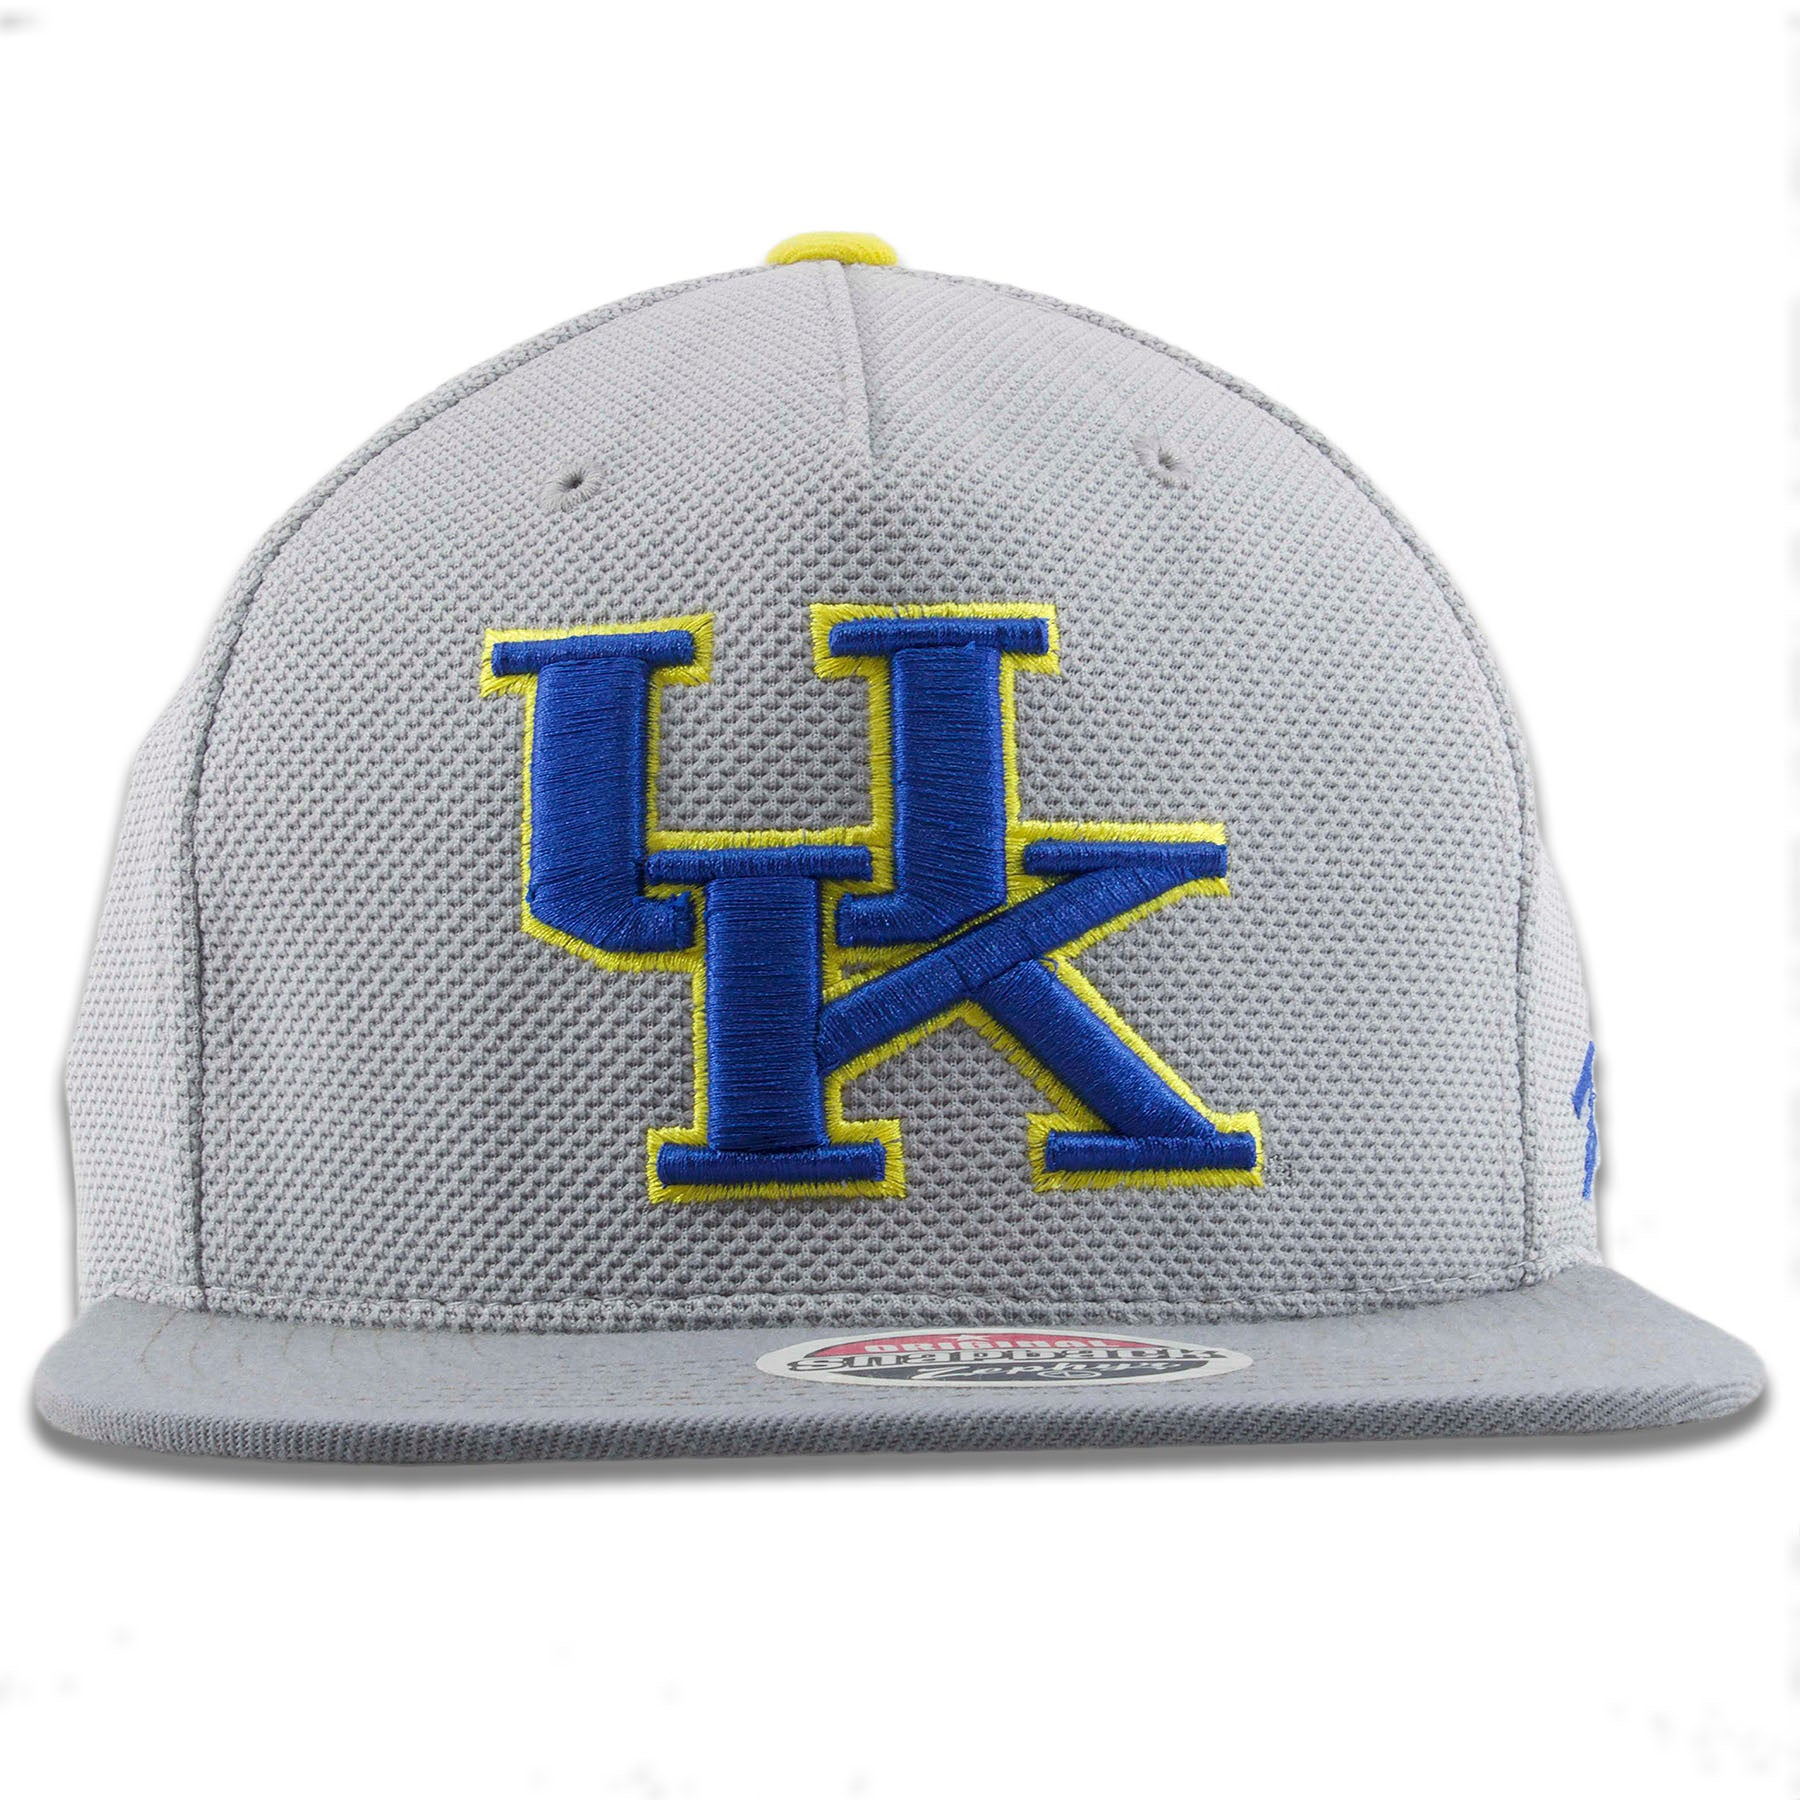 more photos 6ce09 a2c28 The University of Kentucky light gray snapback hat has the UK logo  embroidered on the front